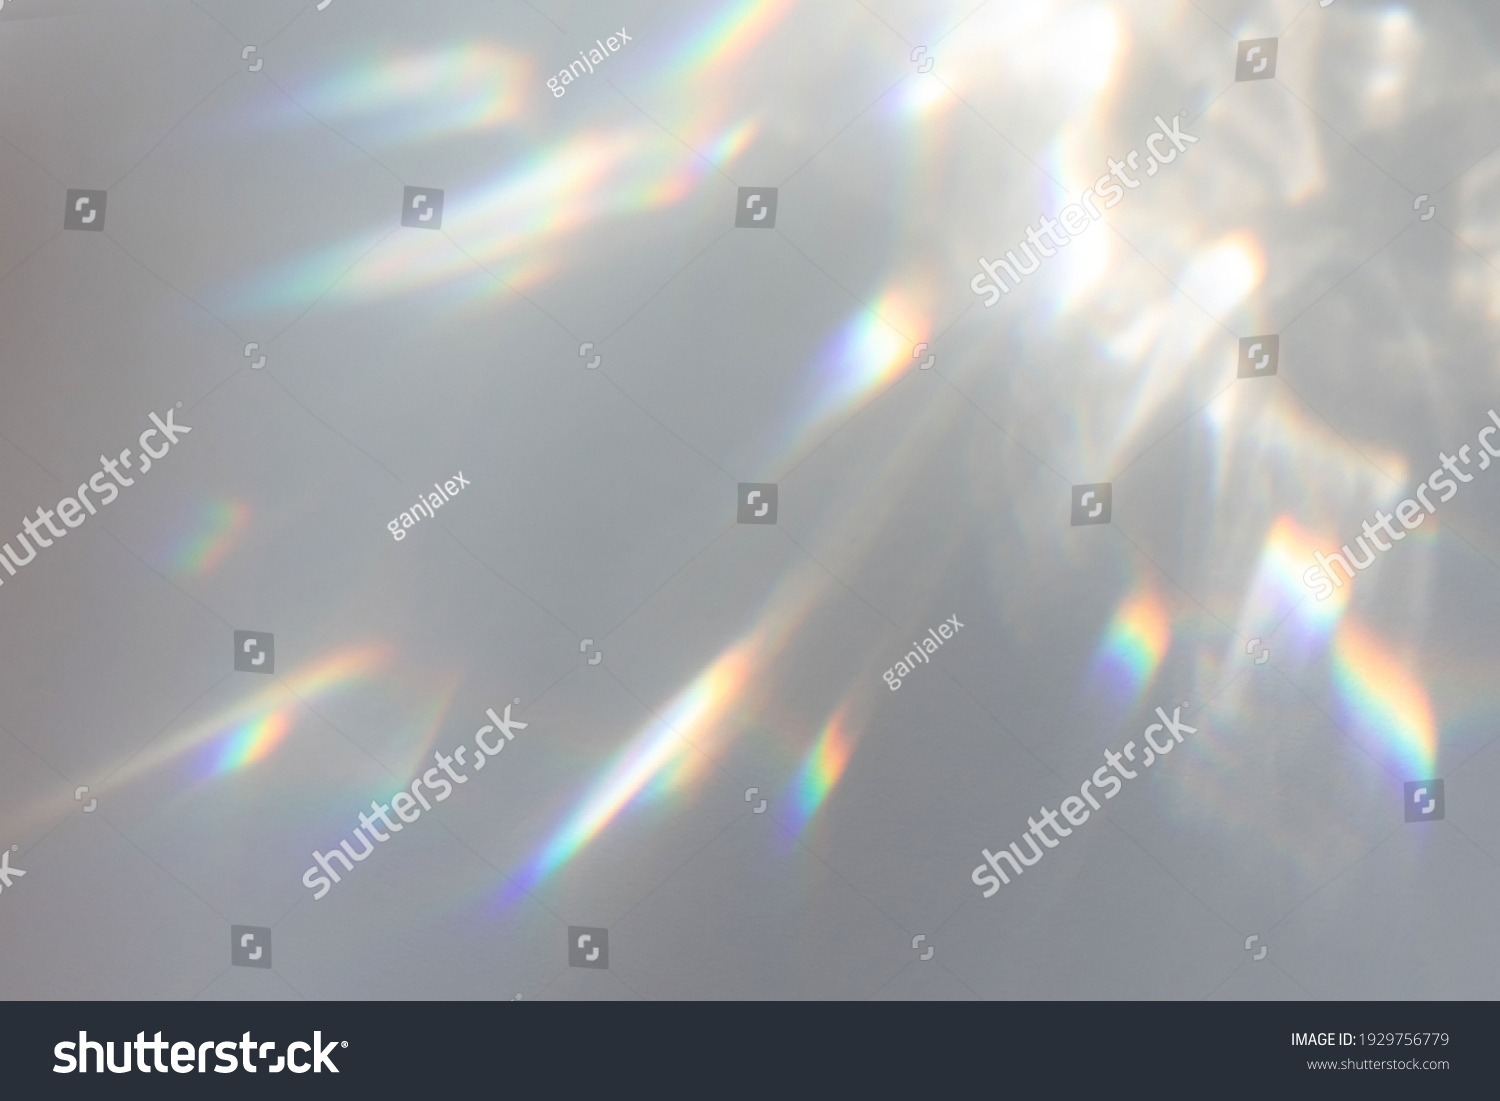 Blurred rainbow light refraction texture overlay effect for photo and mockups. Organic drop diagonal holographic flare on a white wall. Shadows for natural light effects #1929756779